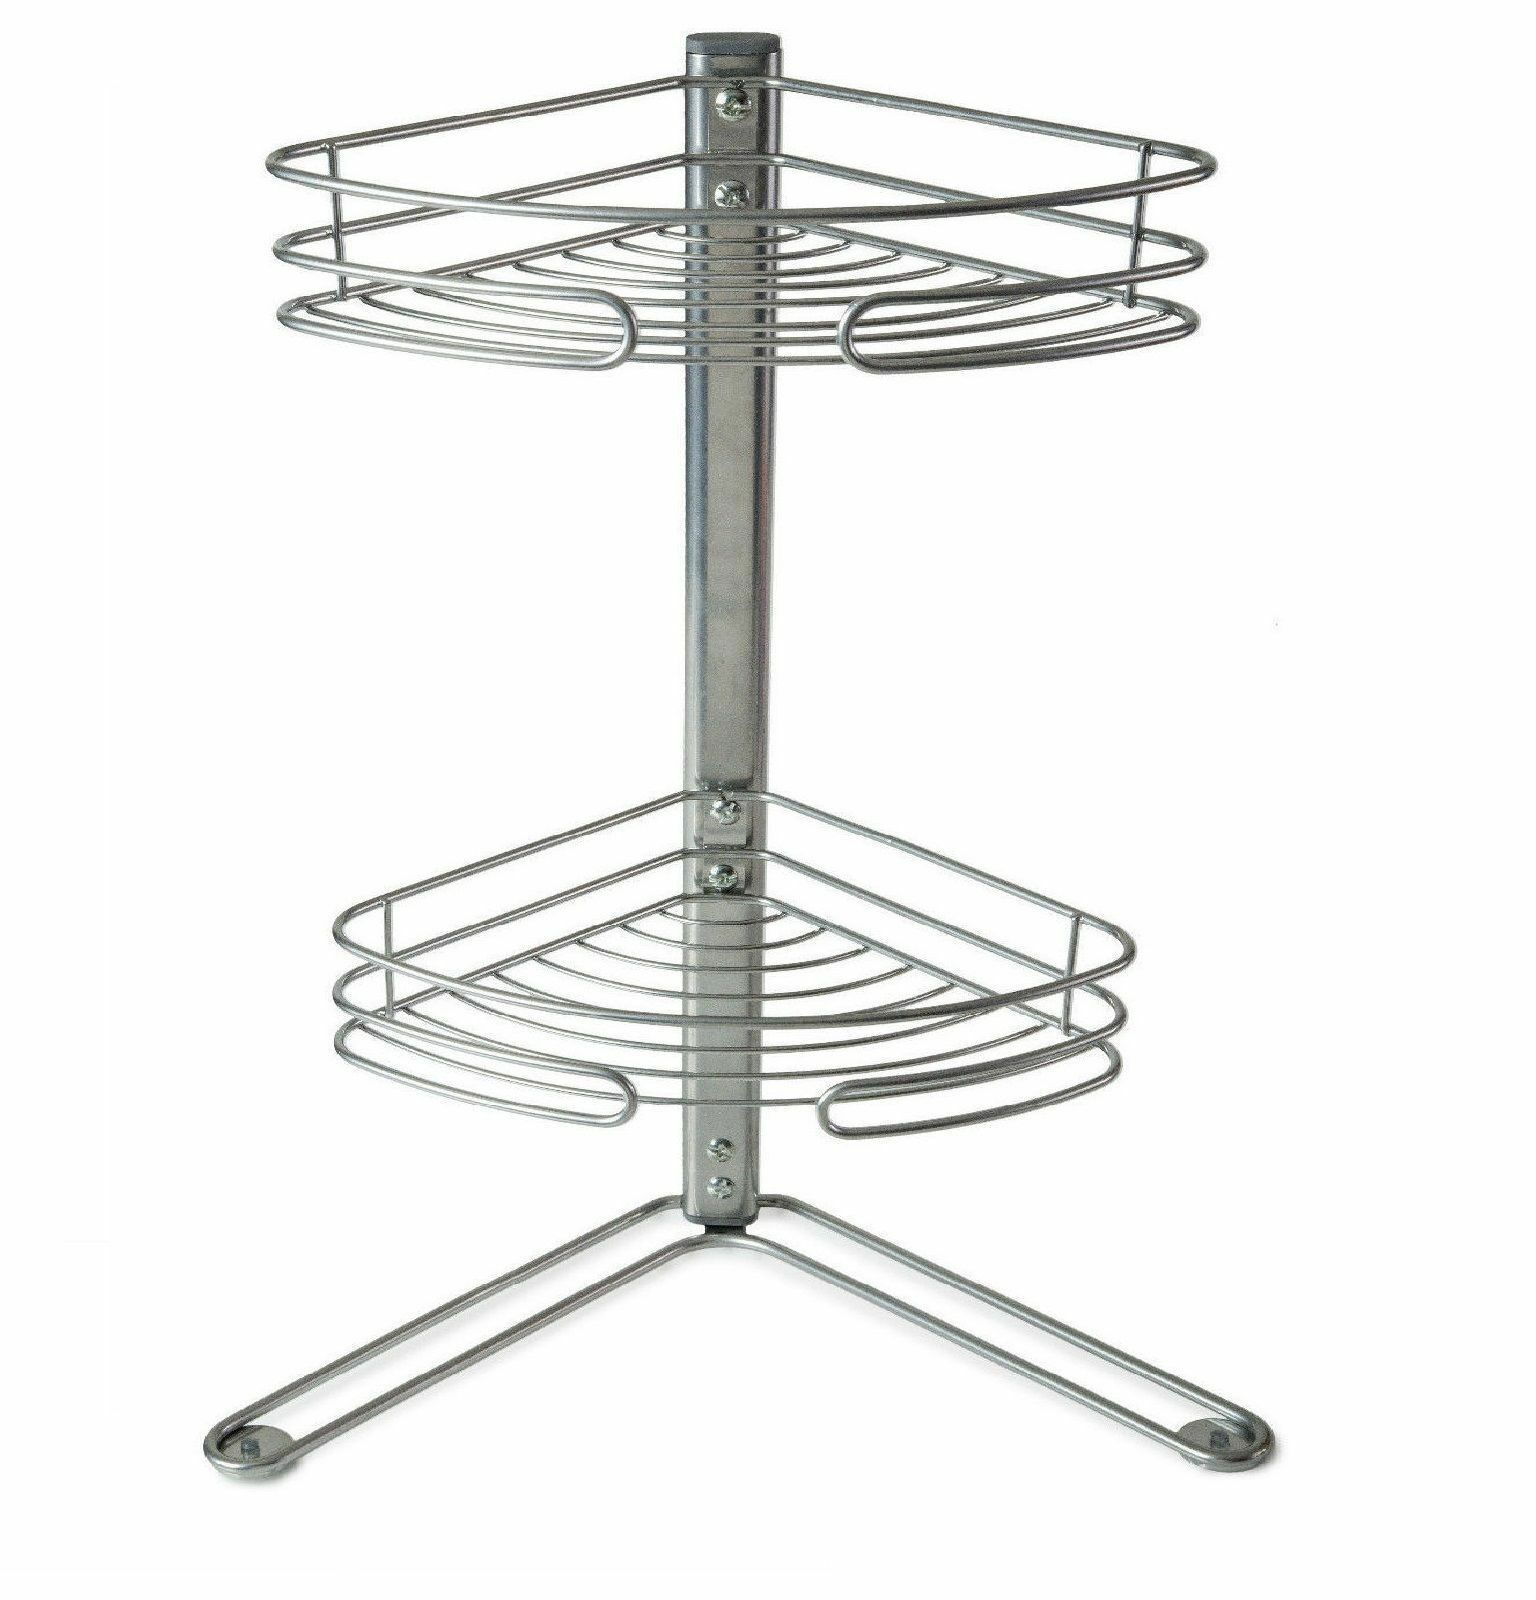 2 Tier Free Standing Caddy